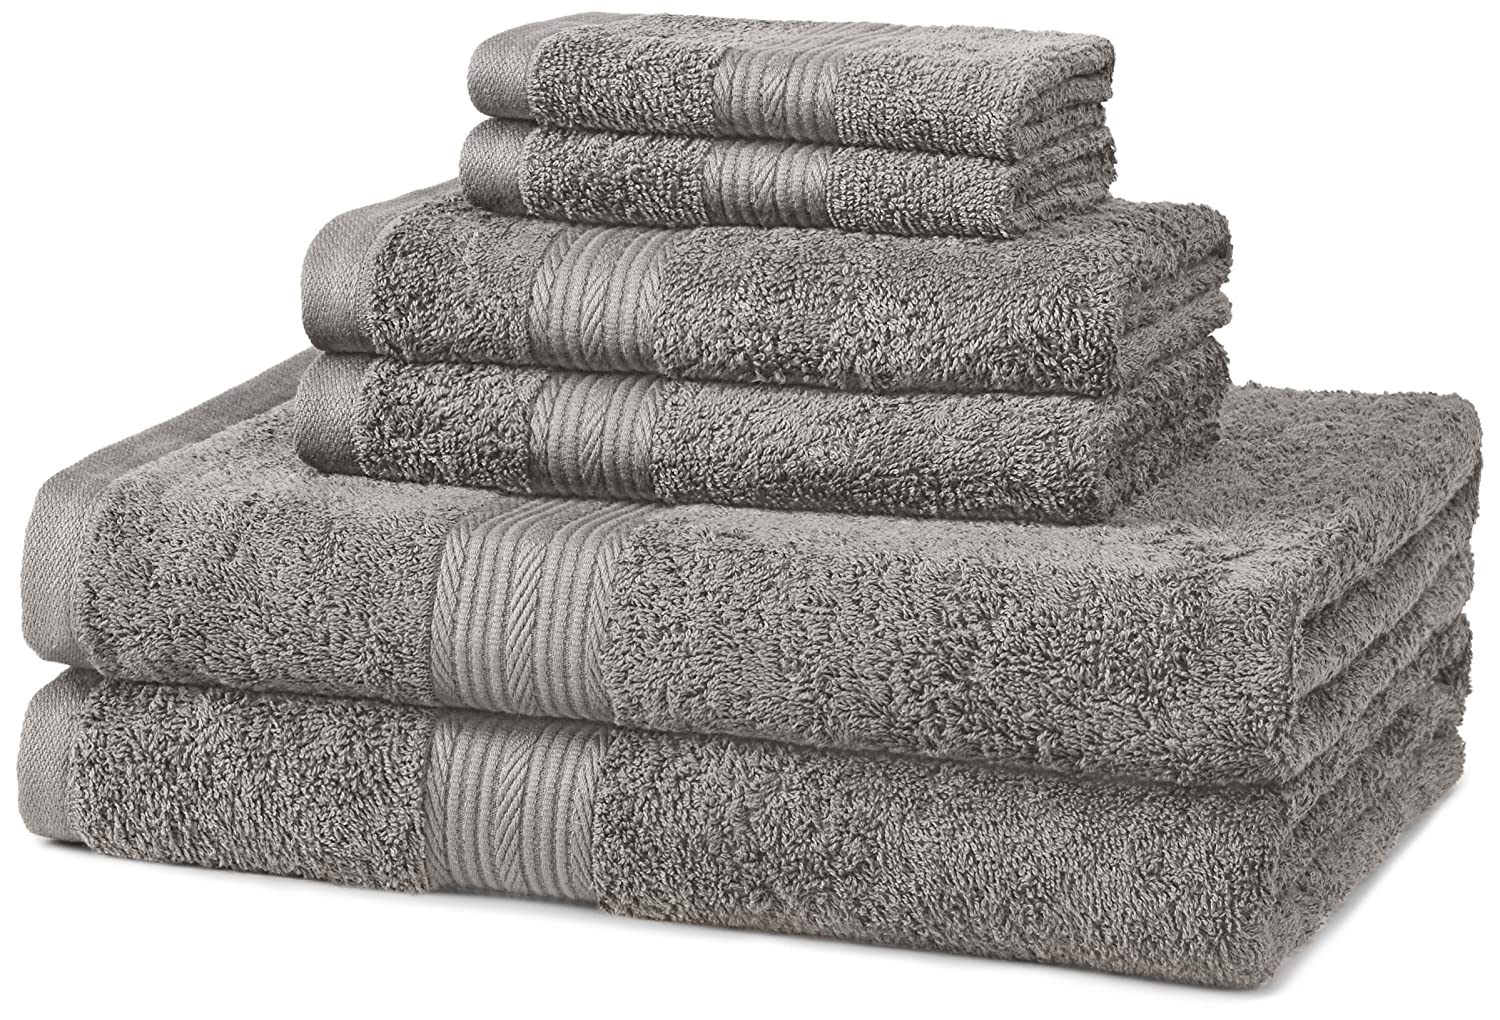 AmazonBasics Fade-Resistant Towel Set 6-Piece, Grey